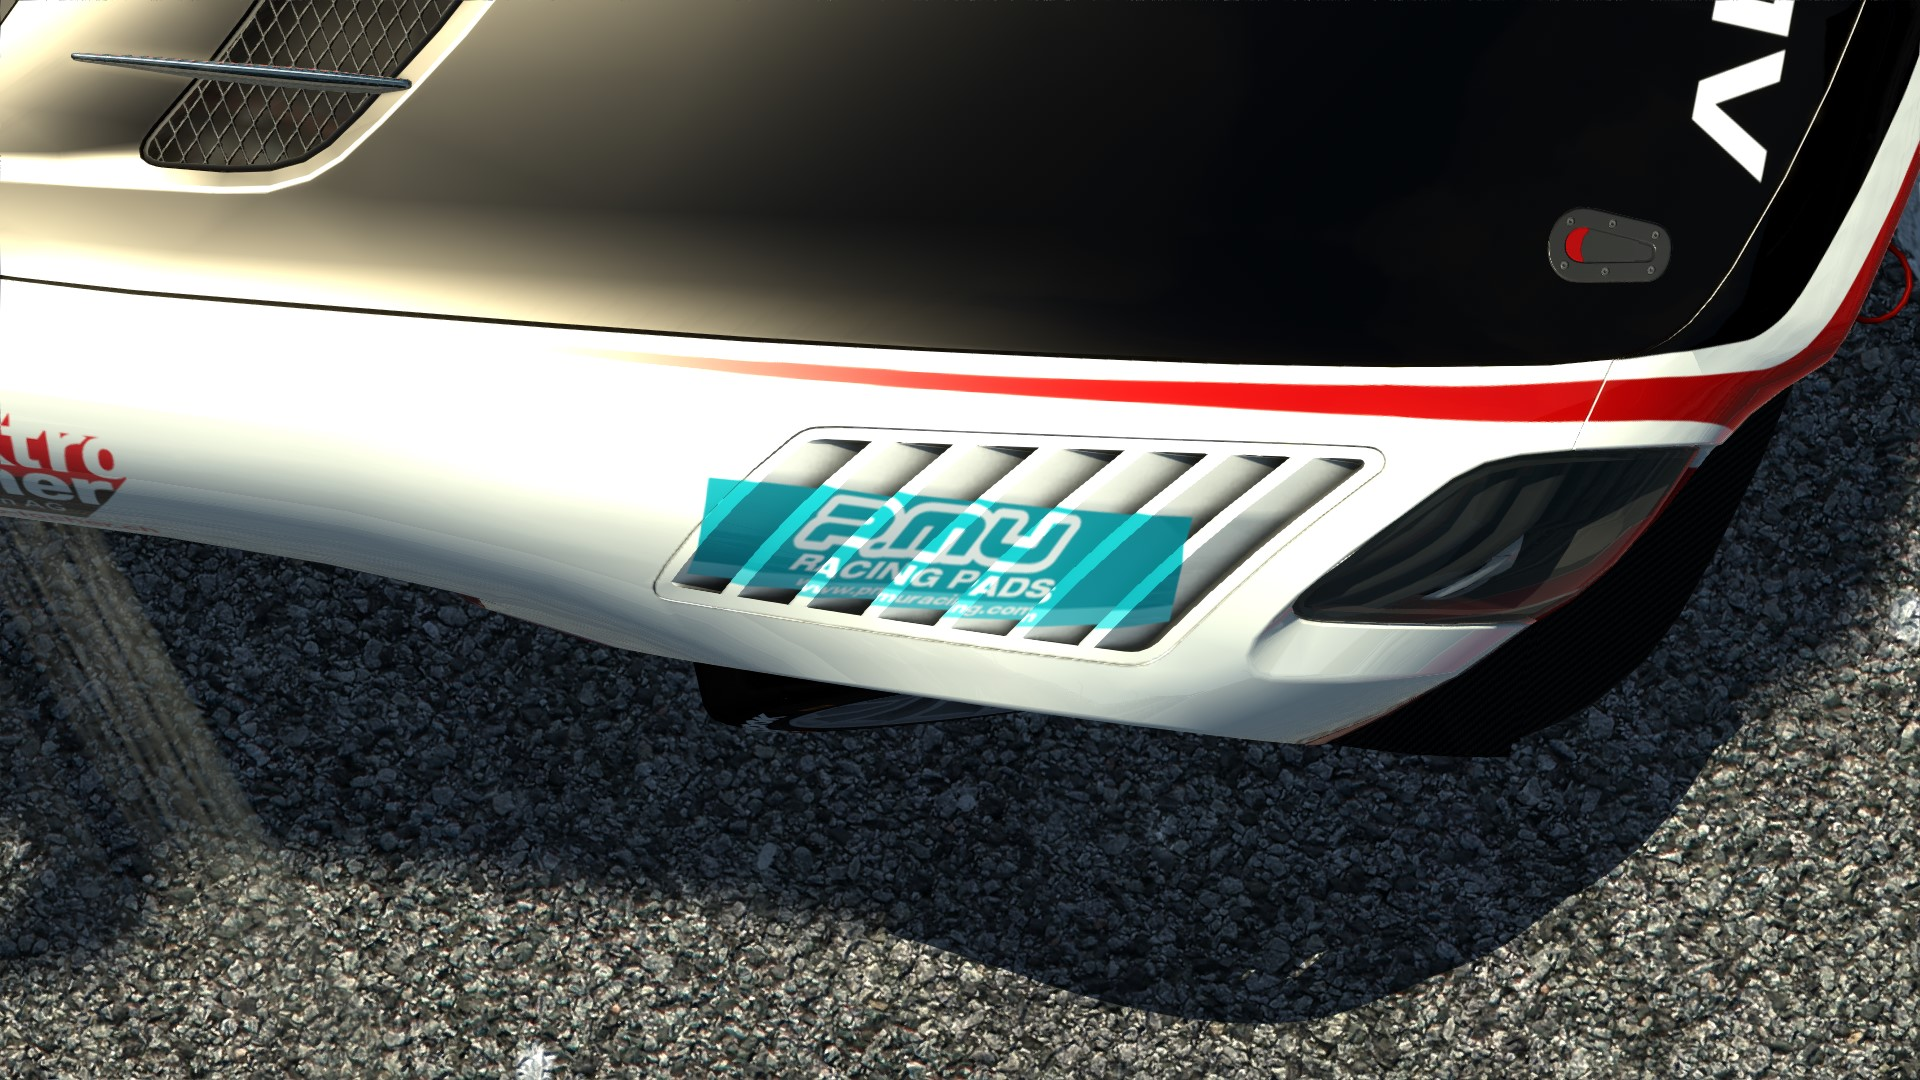 Screenshot_mercedes_sls_gt3_ks_barcelona_11-2-116-1-13-31.jpg